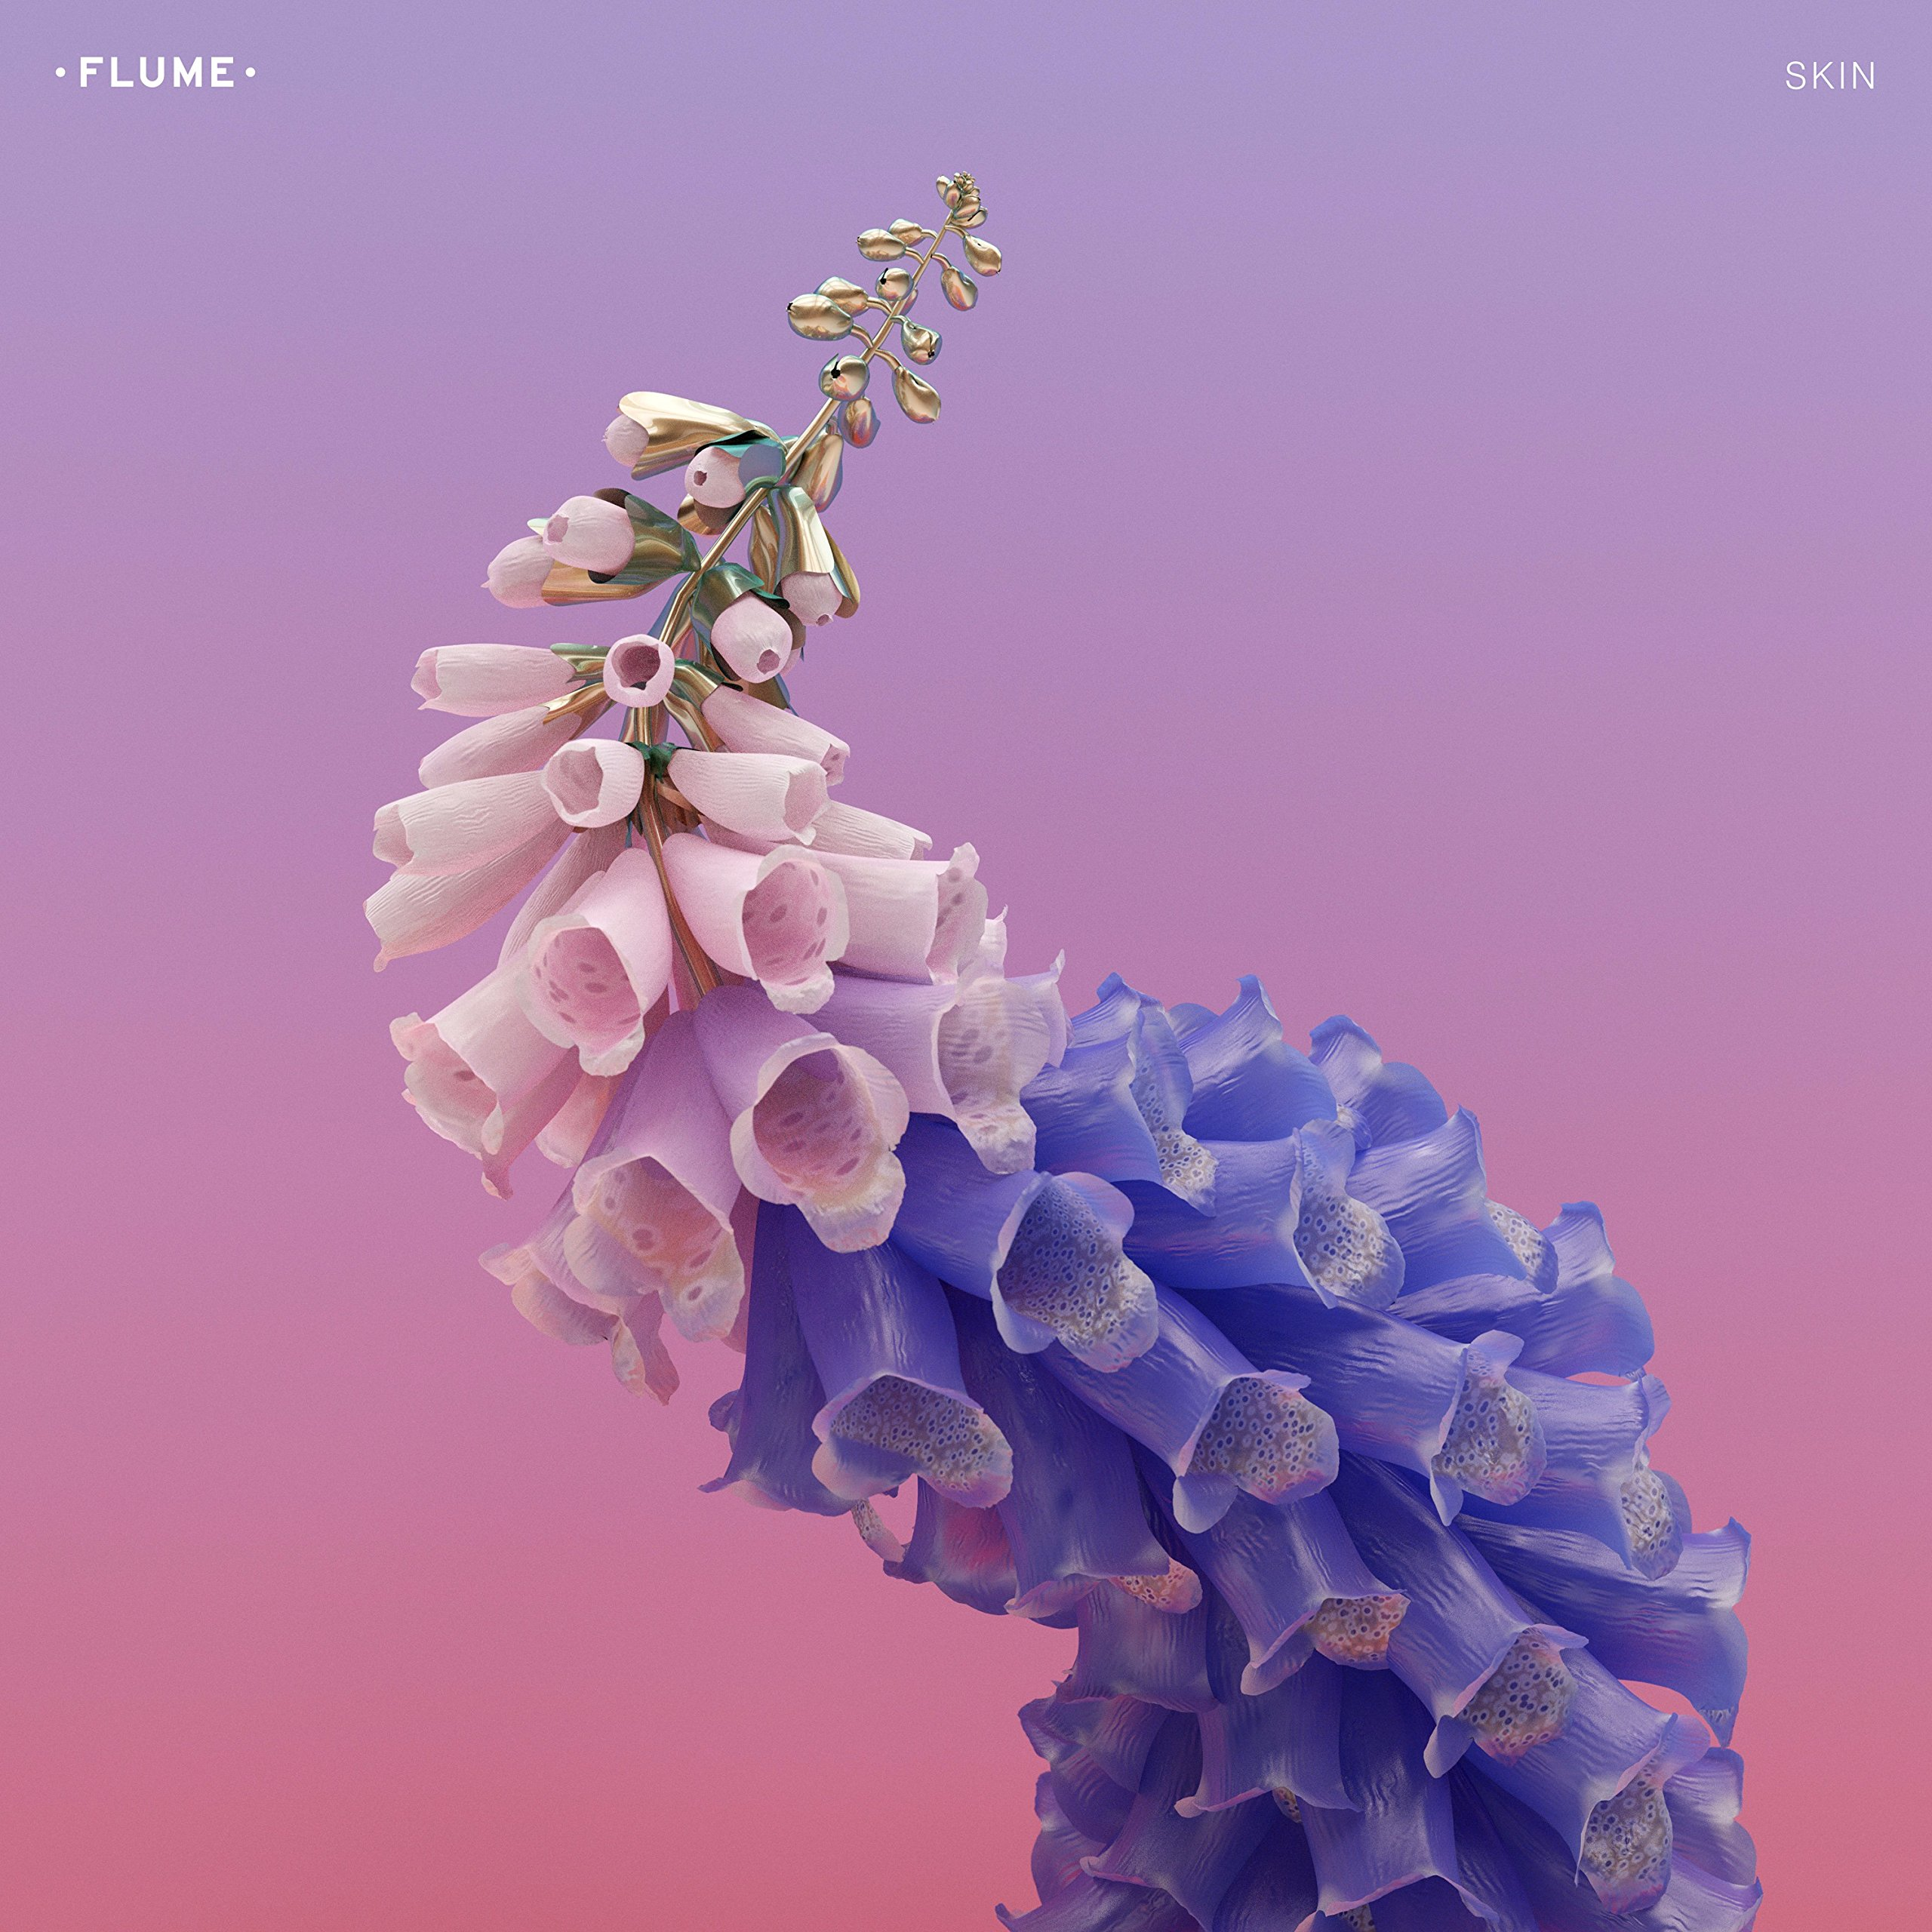 CD : Flume - Skin [Explicit Content] (CD)